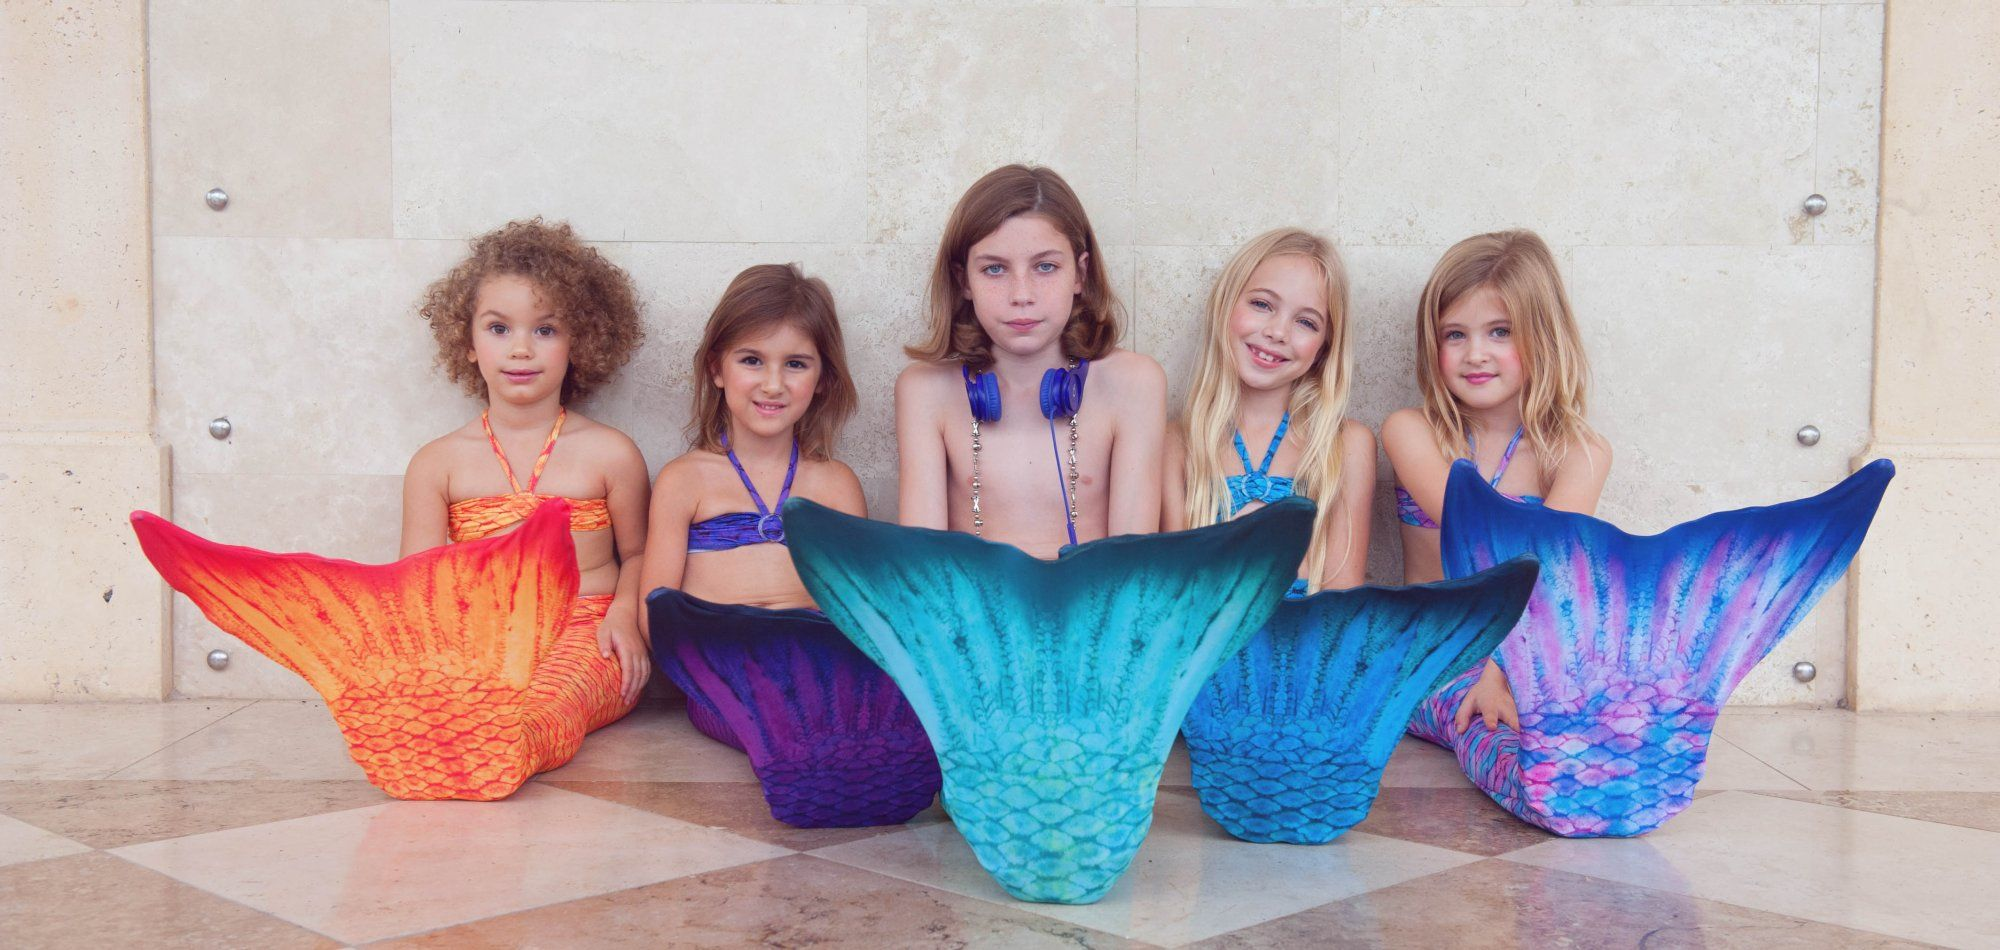 Mermaid Tails For Kids & Adults   Buy Yours Today!   Prices Start At $98.50